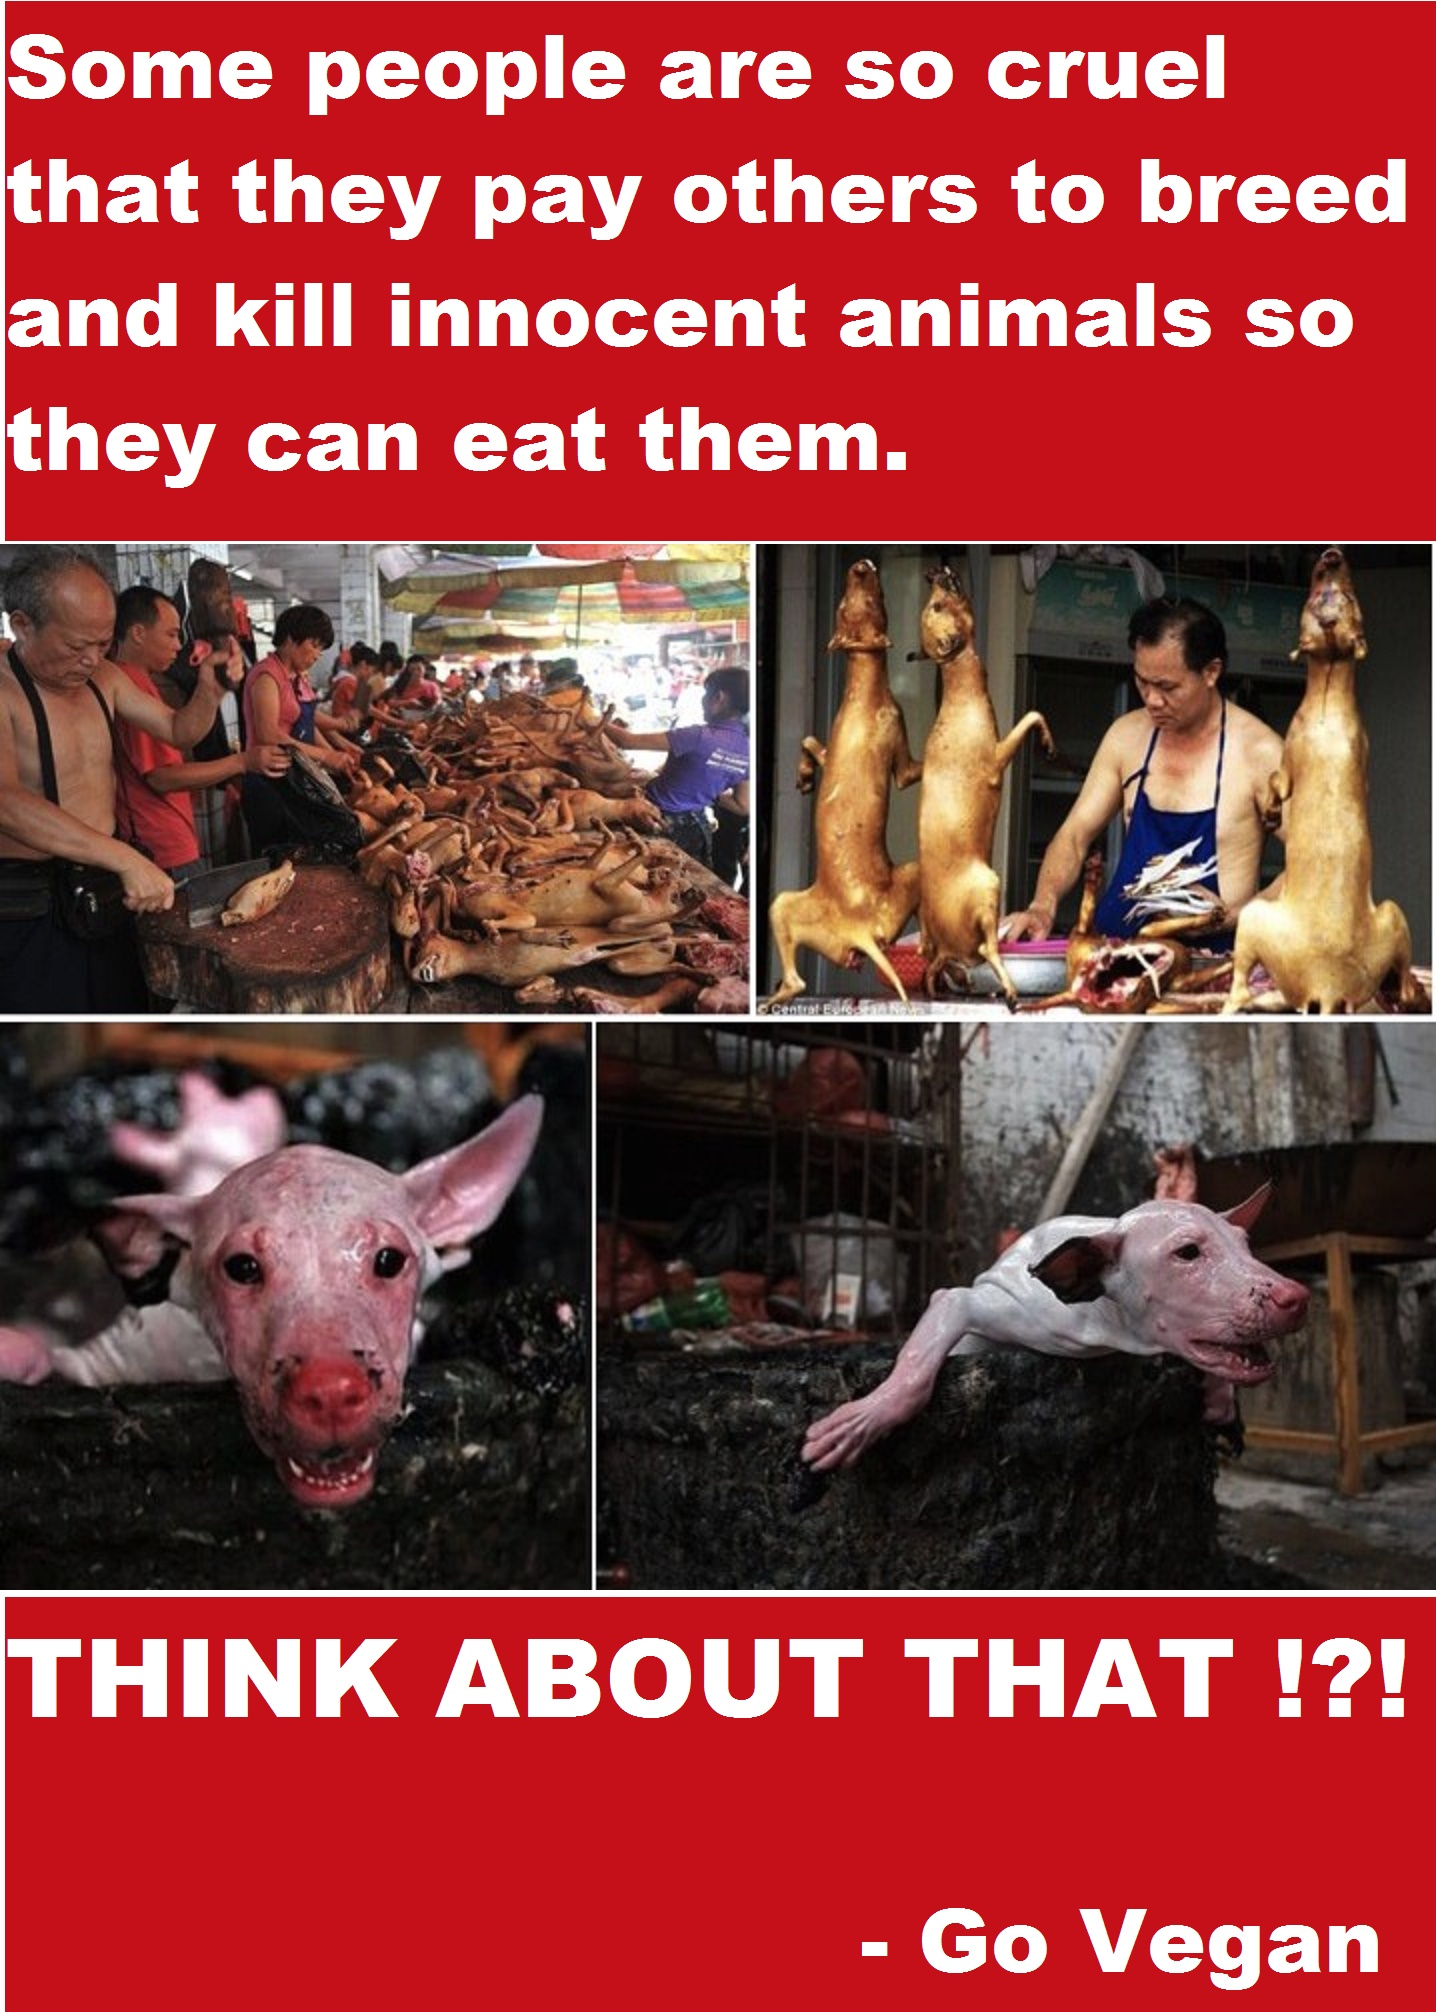 Some people are so cruel that they pay others to breed and kill innocent animals so they can eat them. THINK ABOUT THAT !?! - Go Vegan